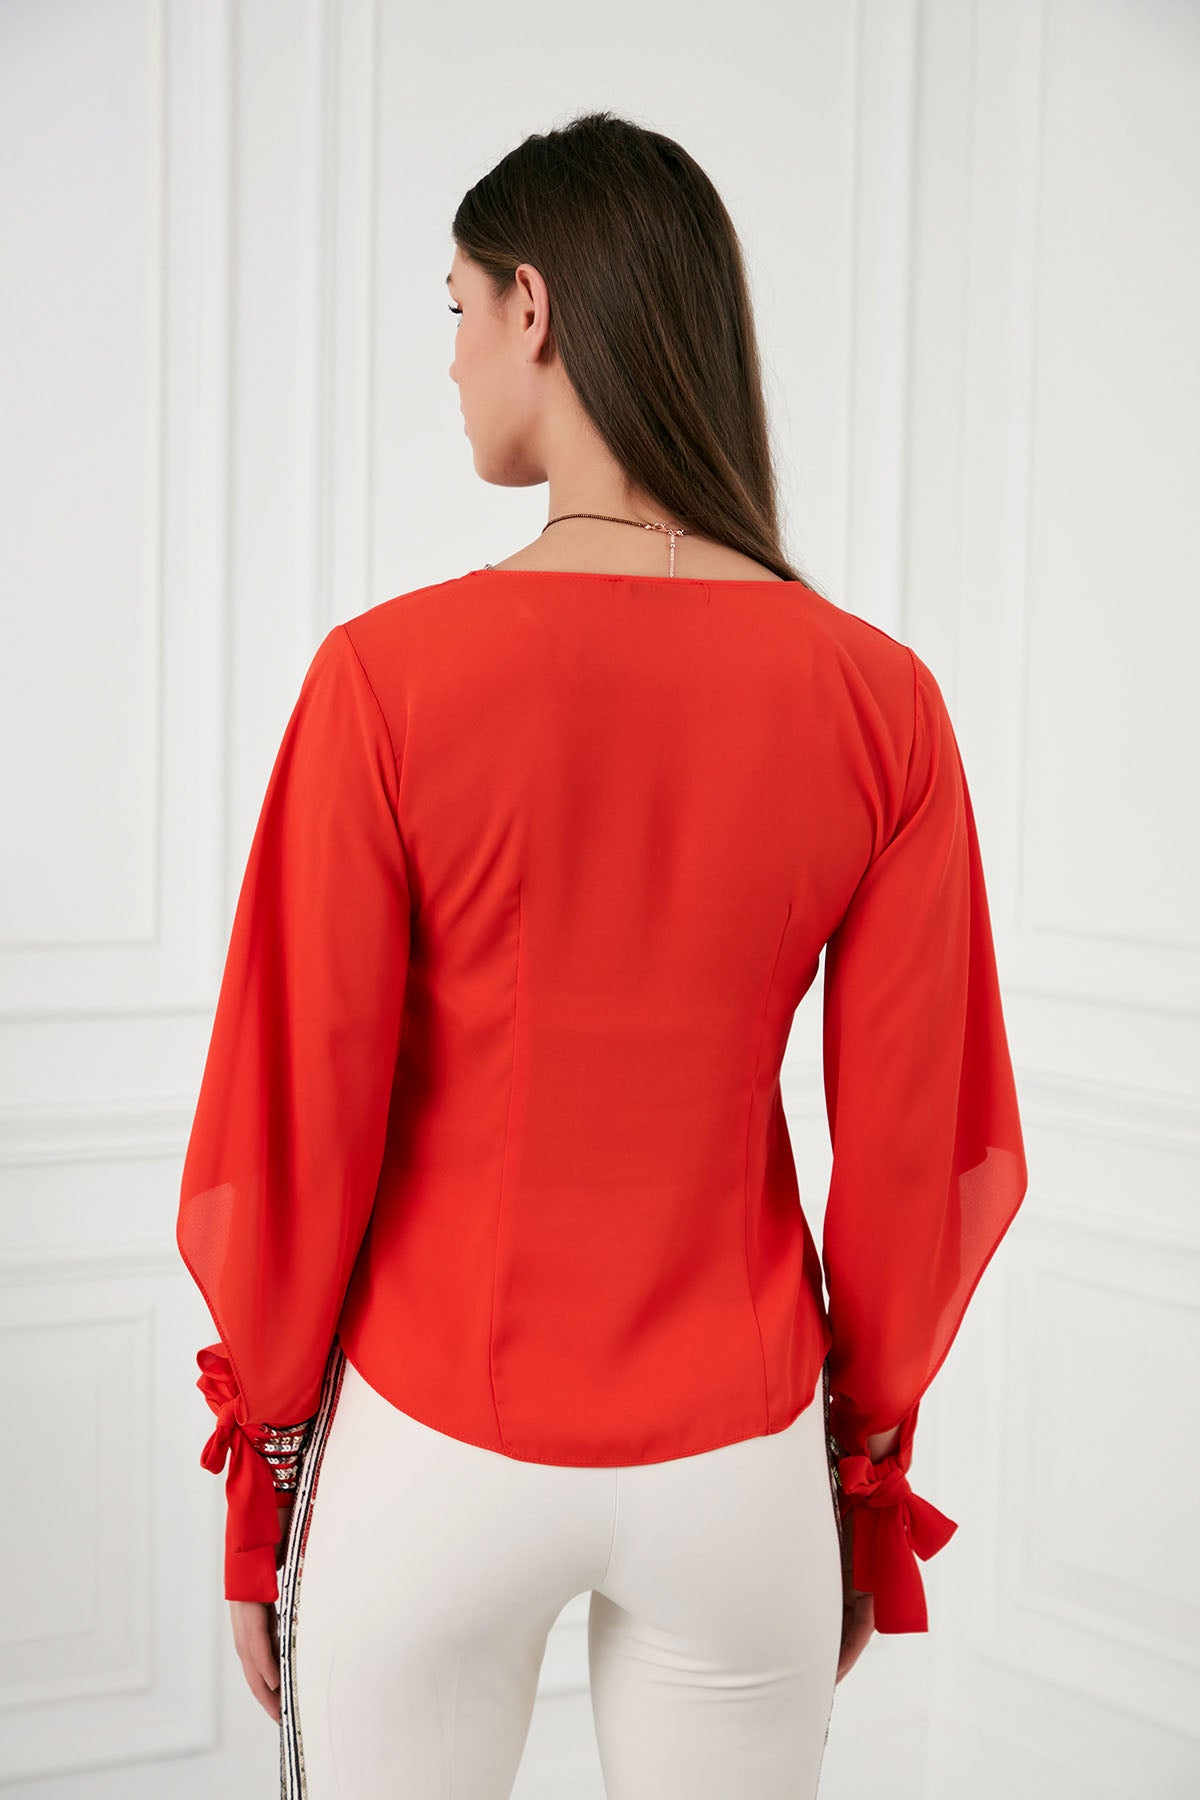 V Neck Sequin Adjustable Cuffs Red Top - 16540